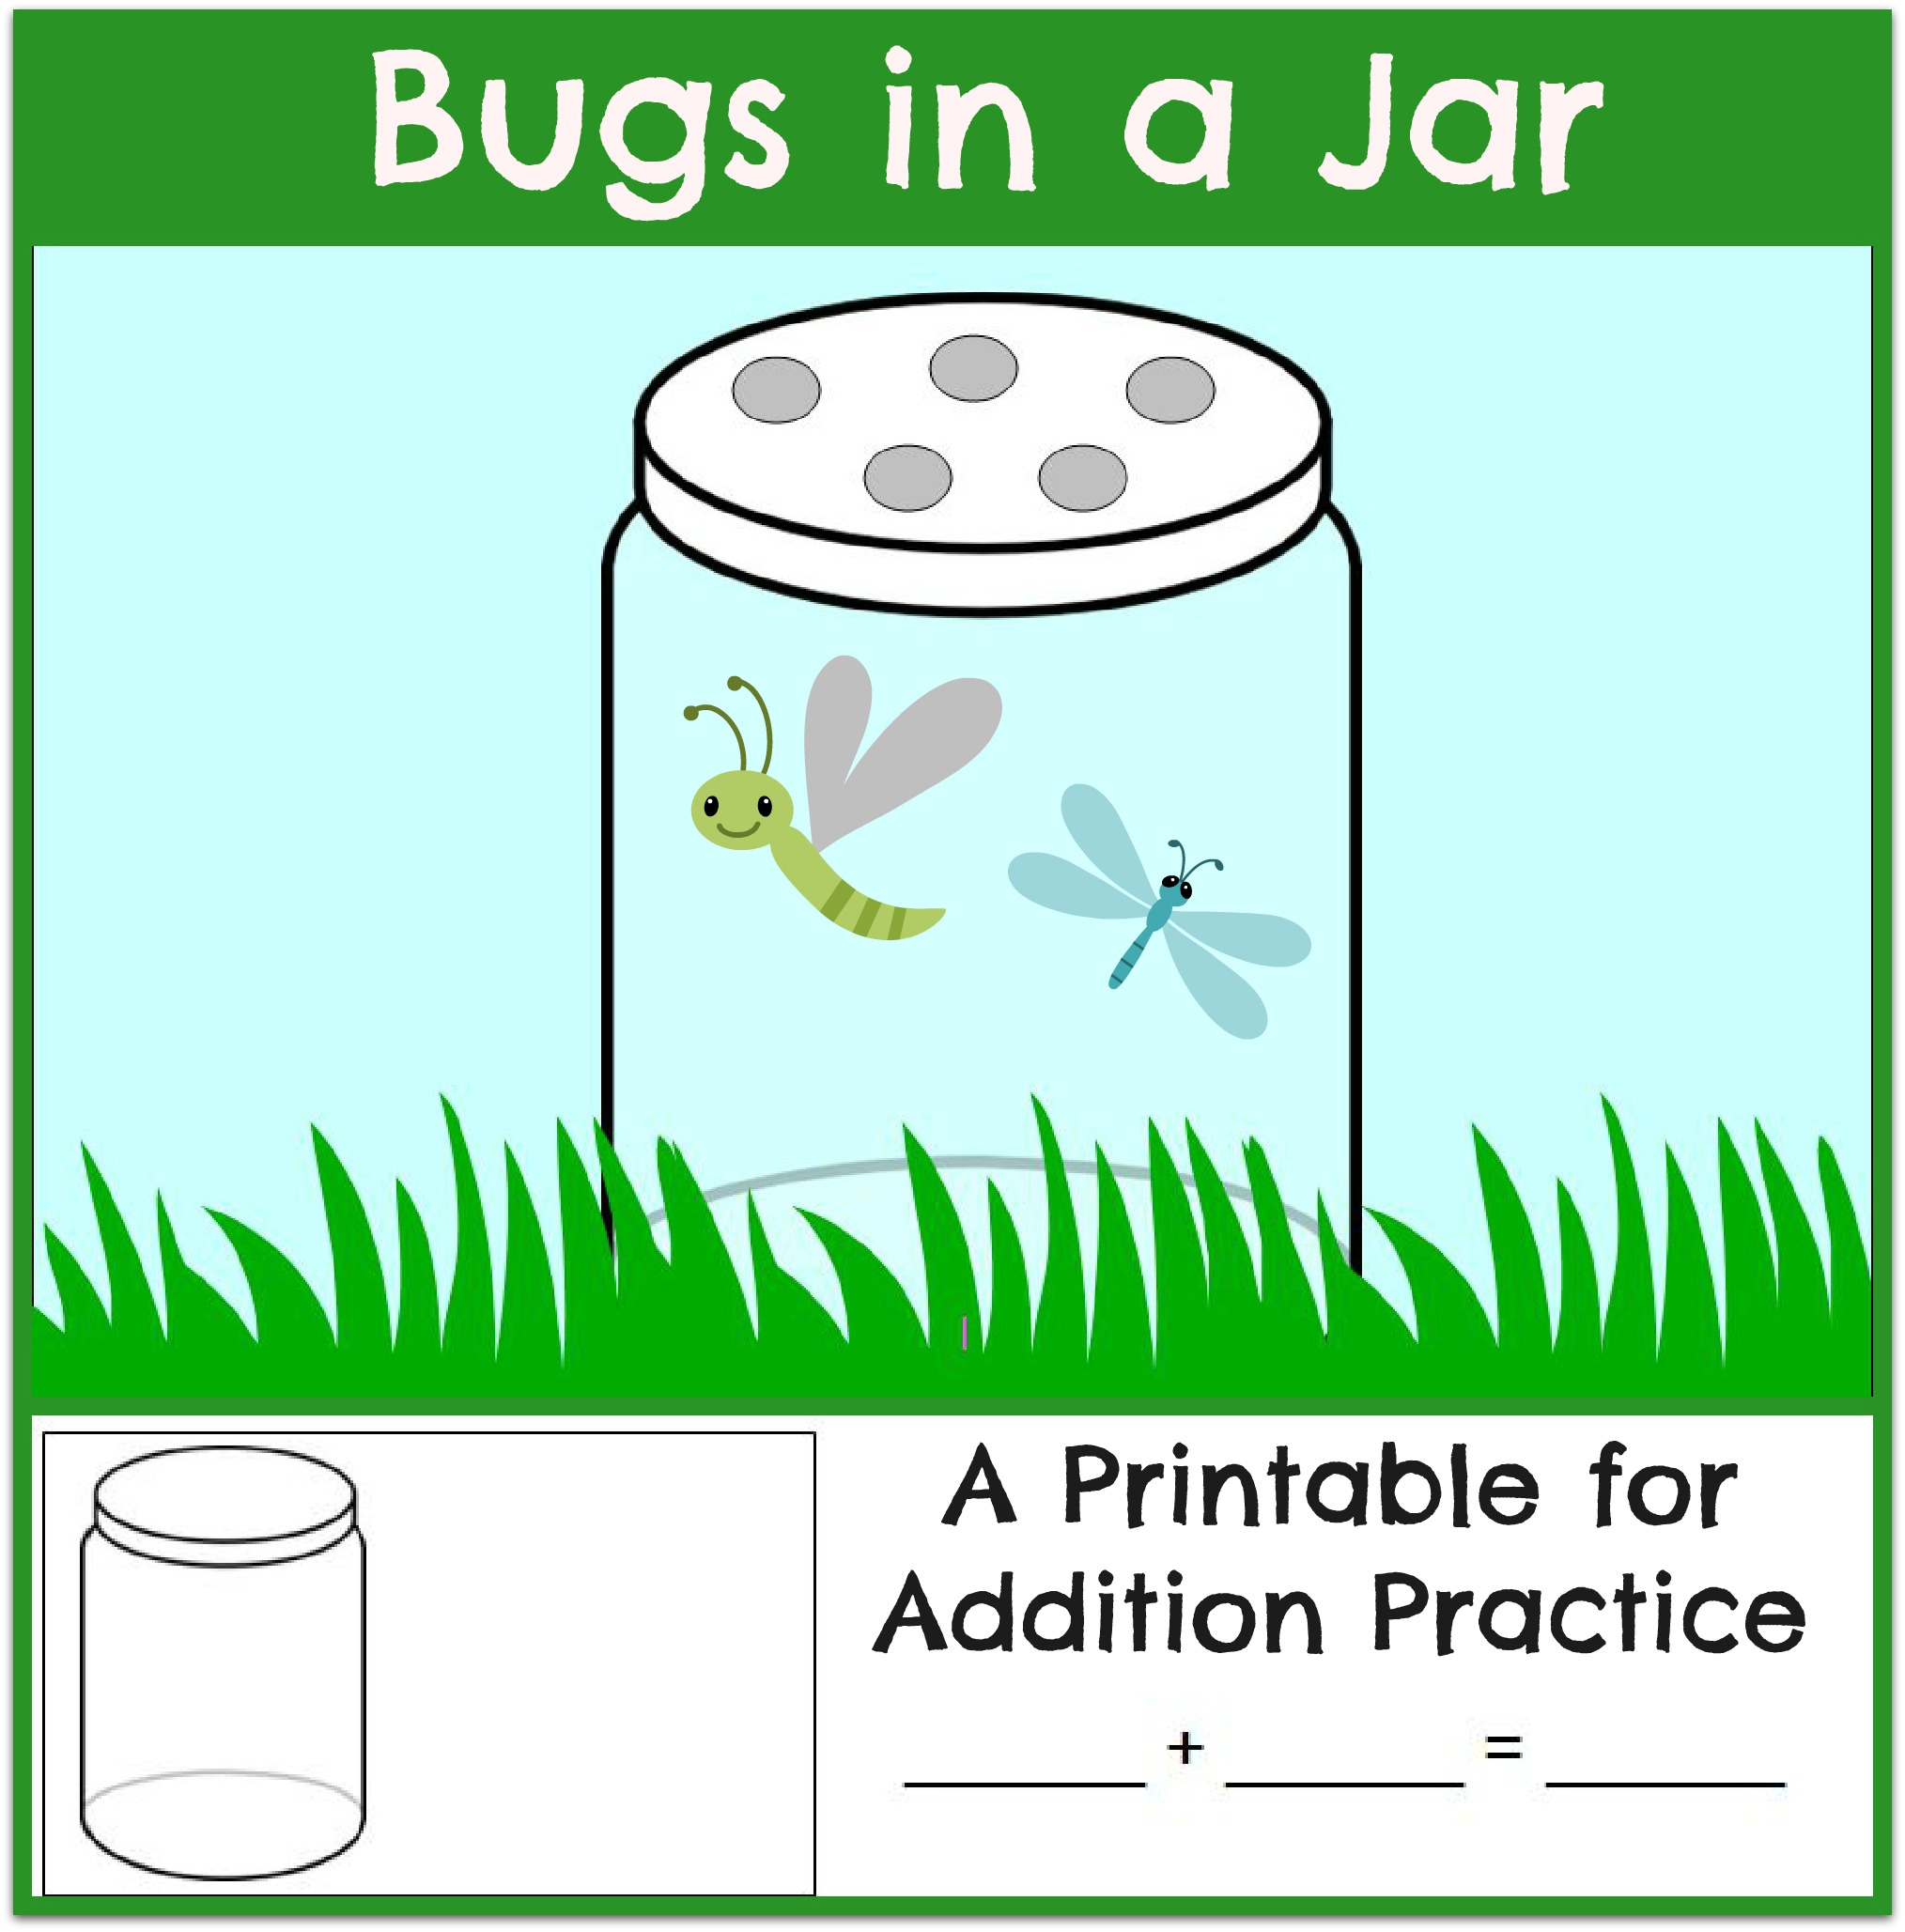 Fun Addition Practice: Bugs in a Jar - The Measured Mom